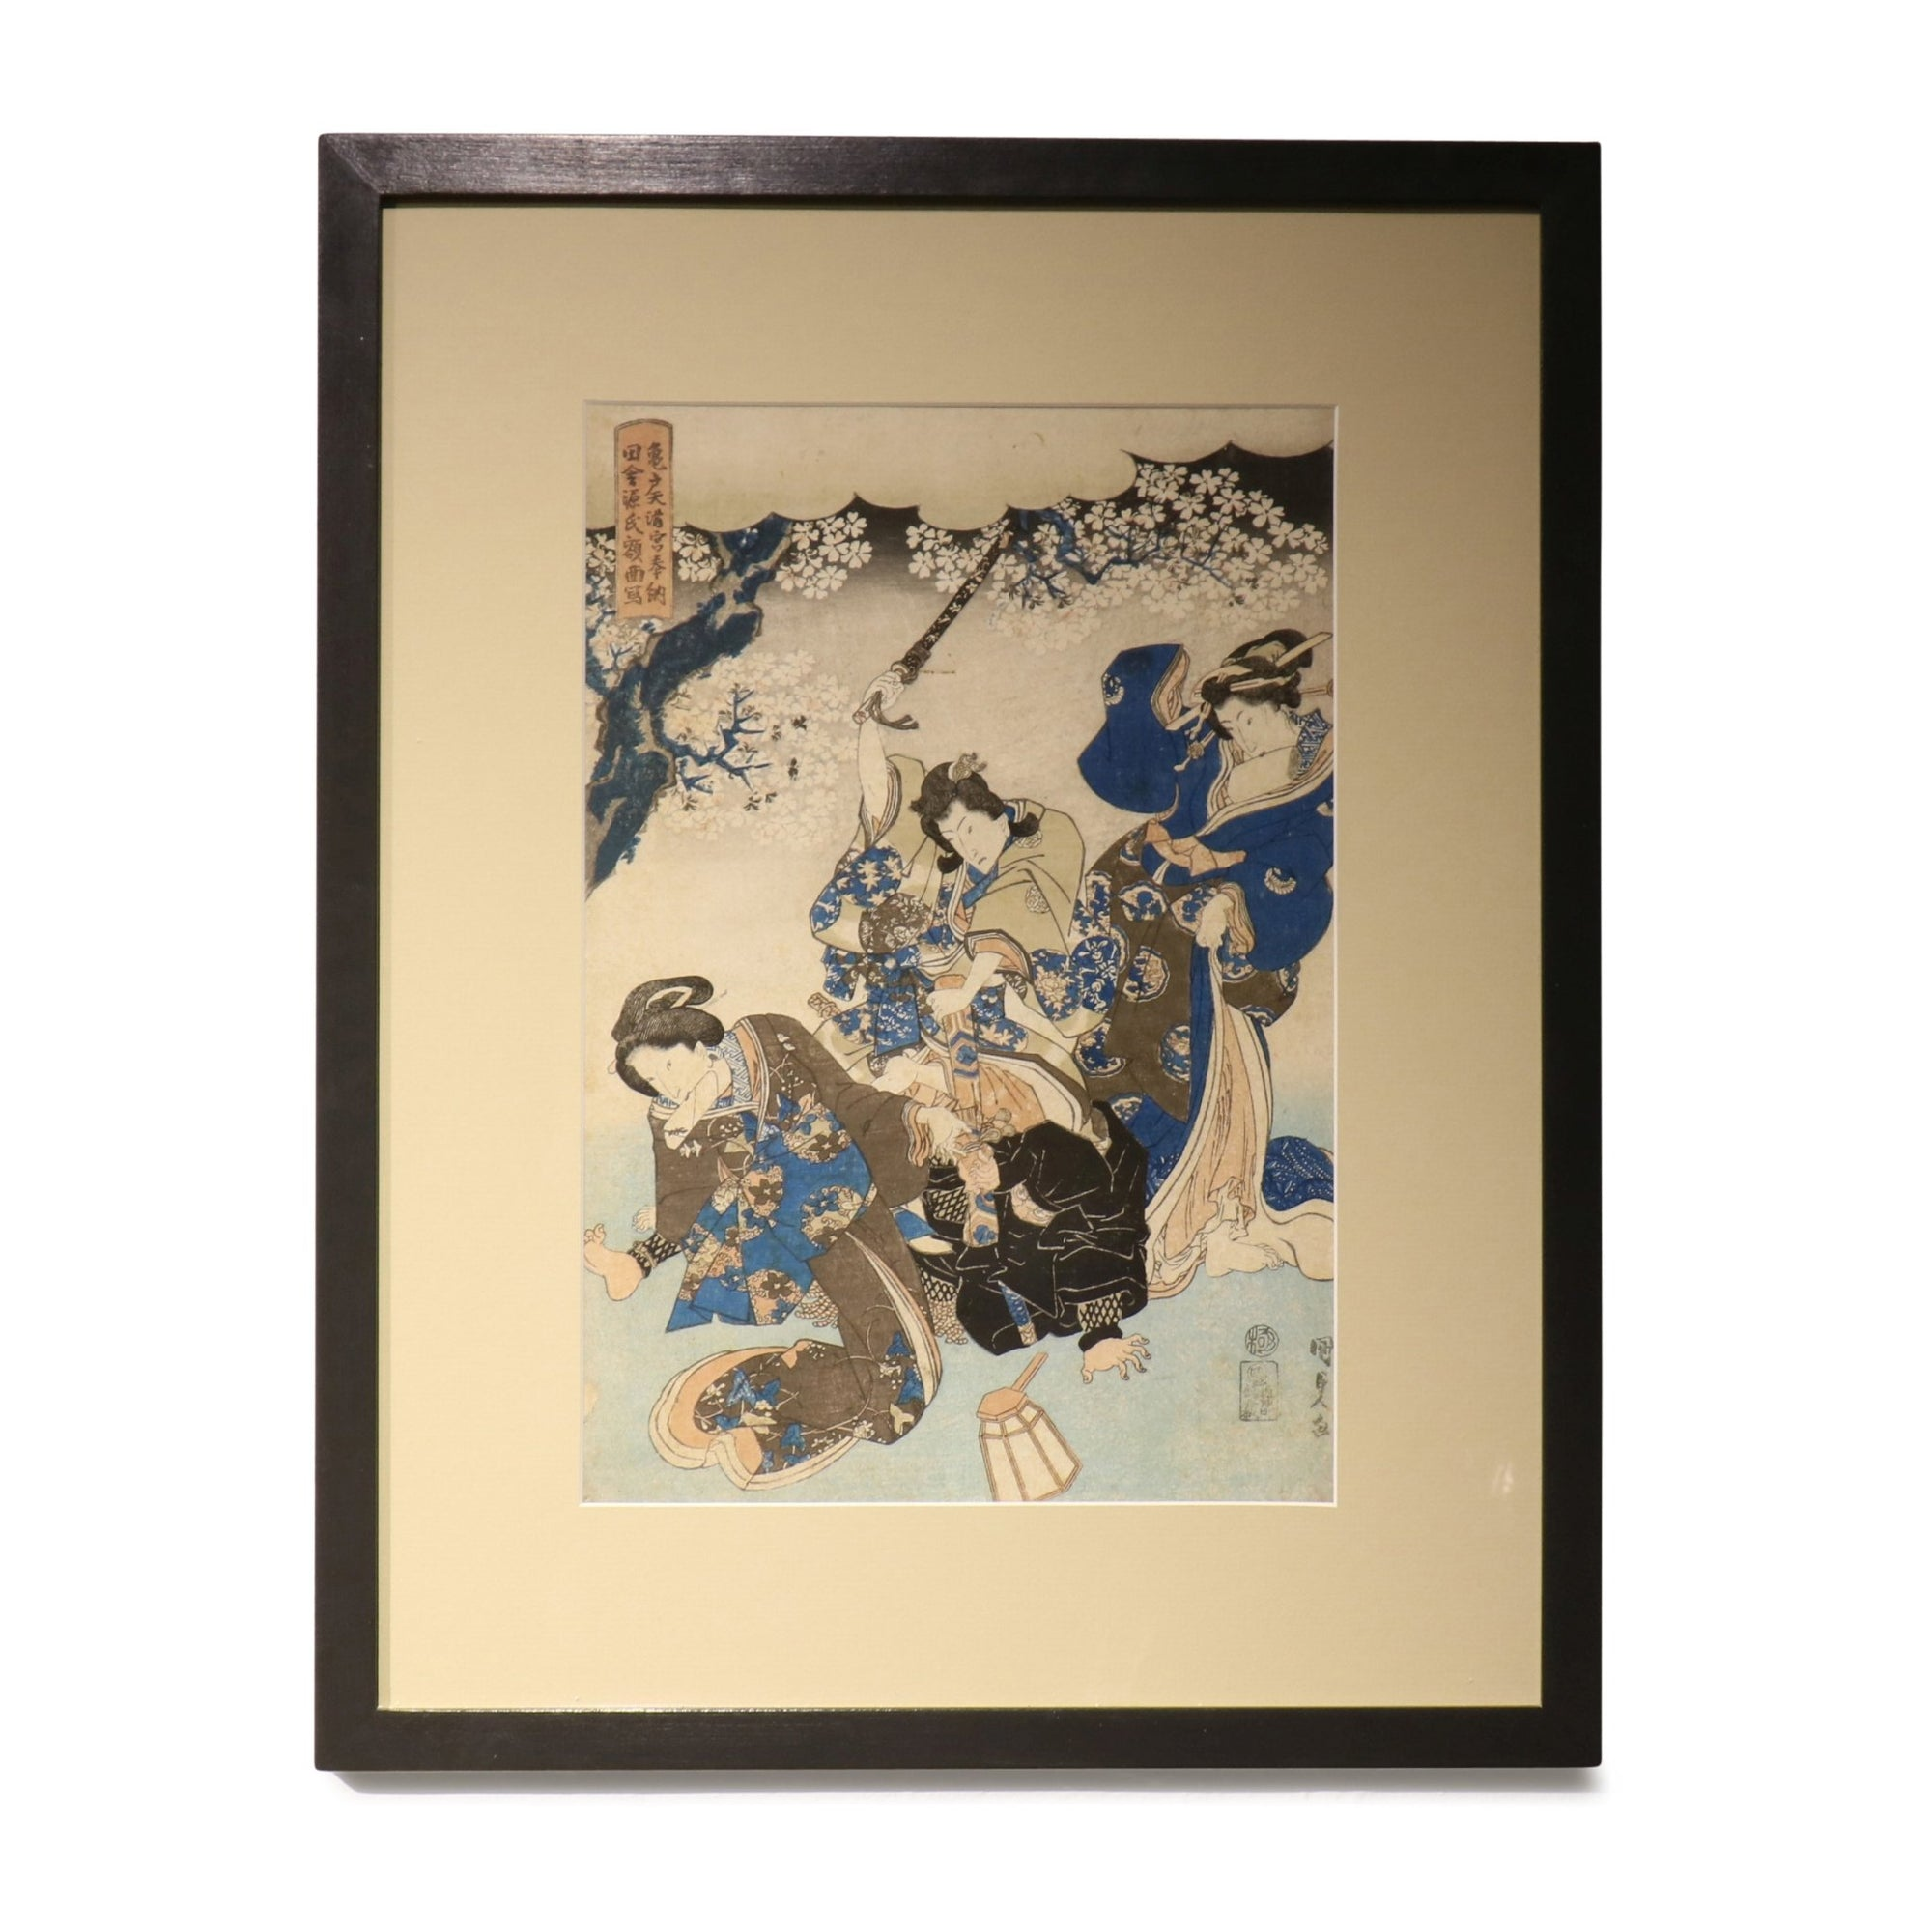 Old Framed Japanese Oban Woodblock Print By Utagawa Kunisada - 19thC | Indigo Oriental Antiques